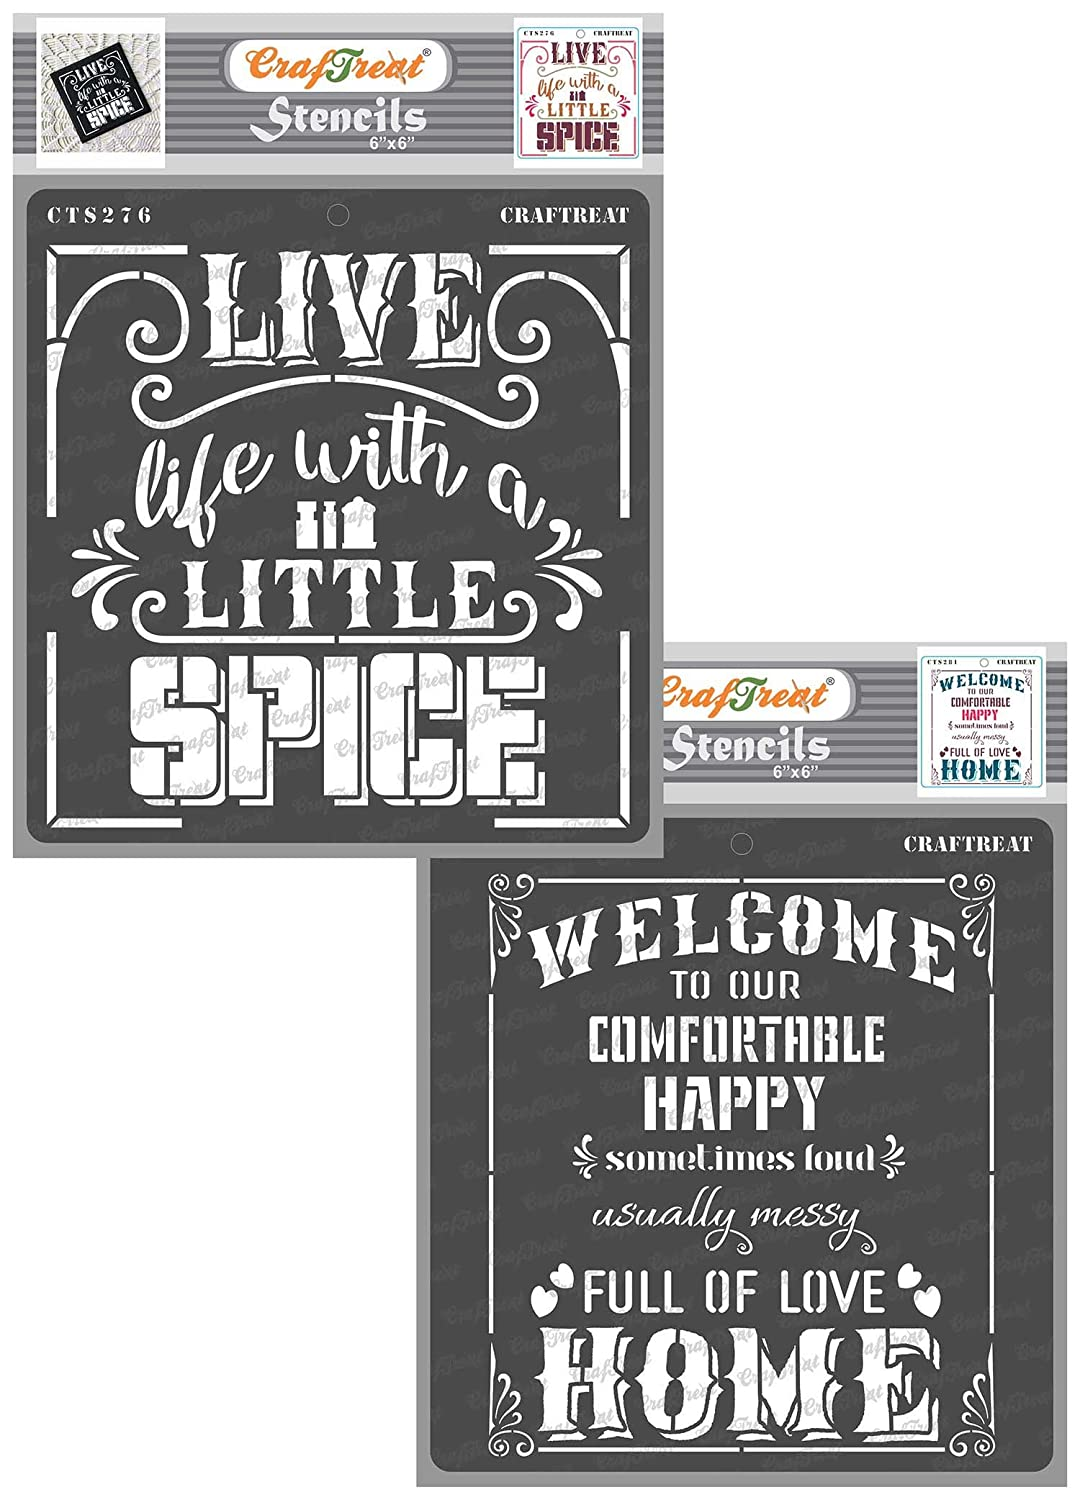 Welcome Home Template from images-na.ssl-images-amazon.com